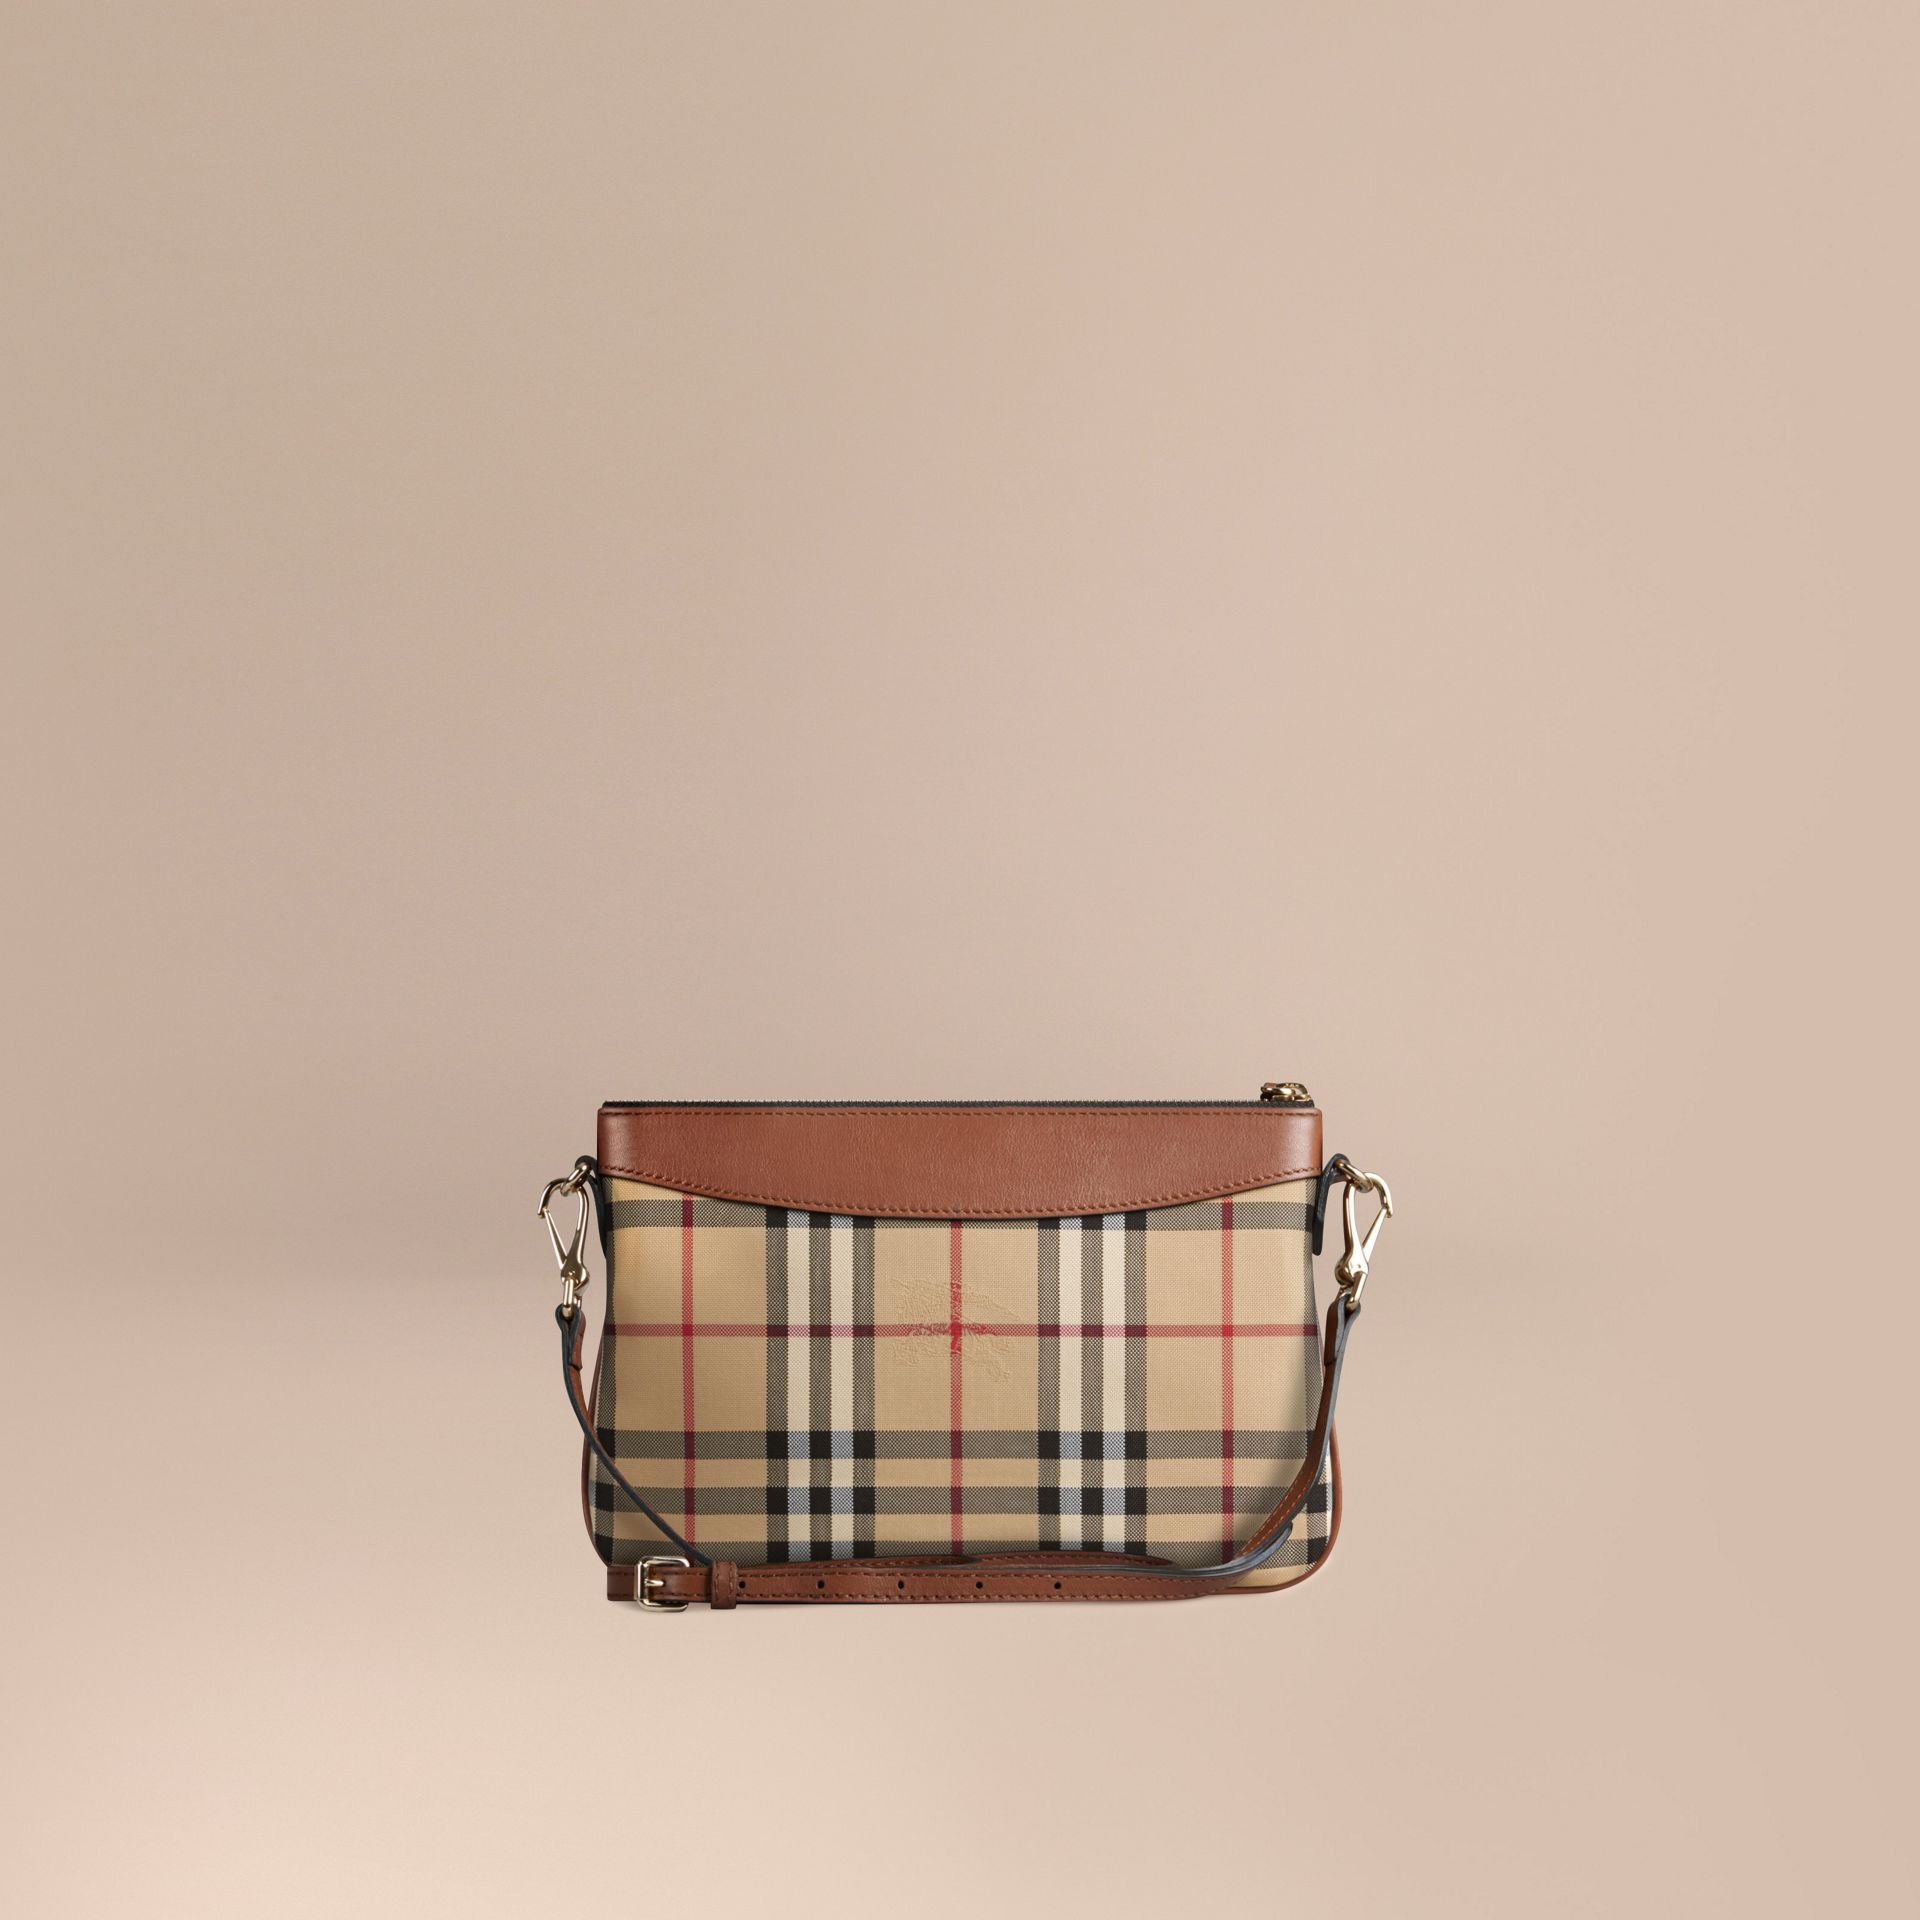 Tan Horseferry Check and Leather Clutch Bag Tan - gallery image 5